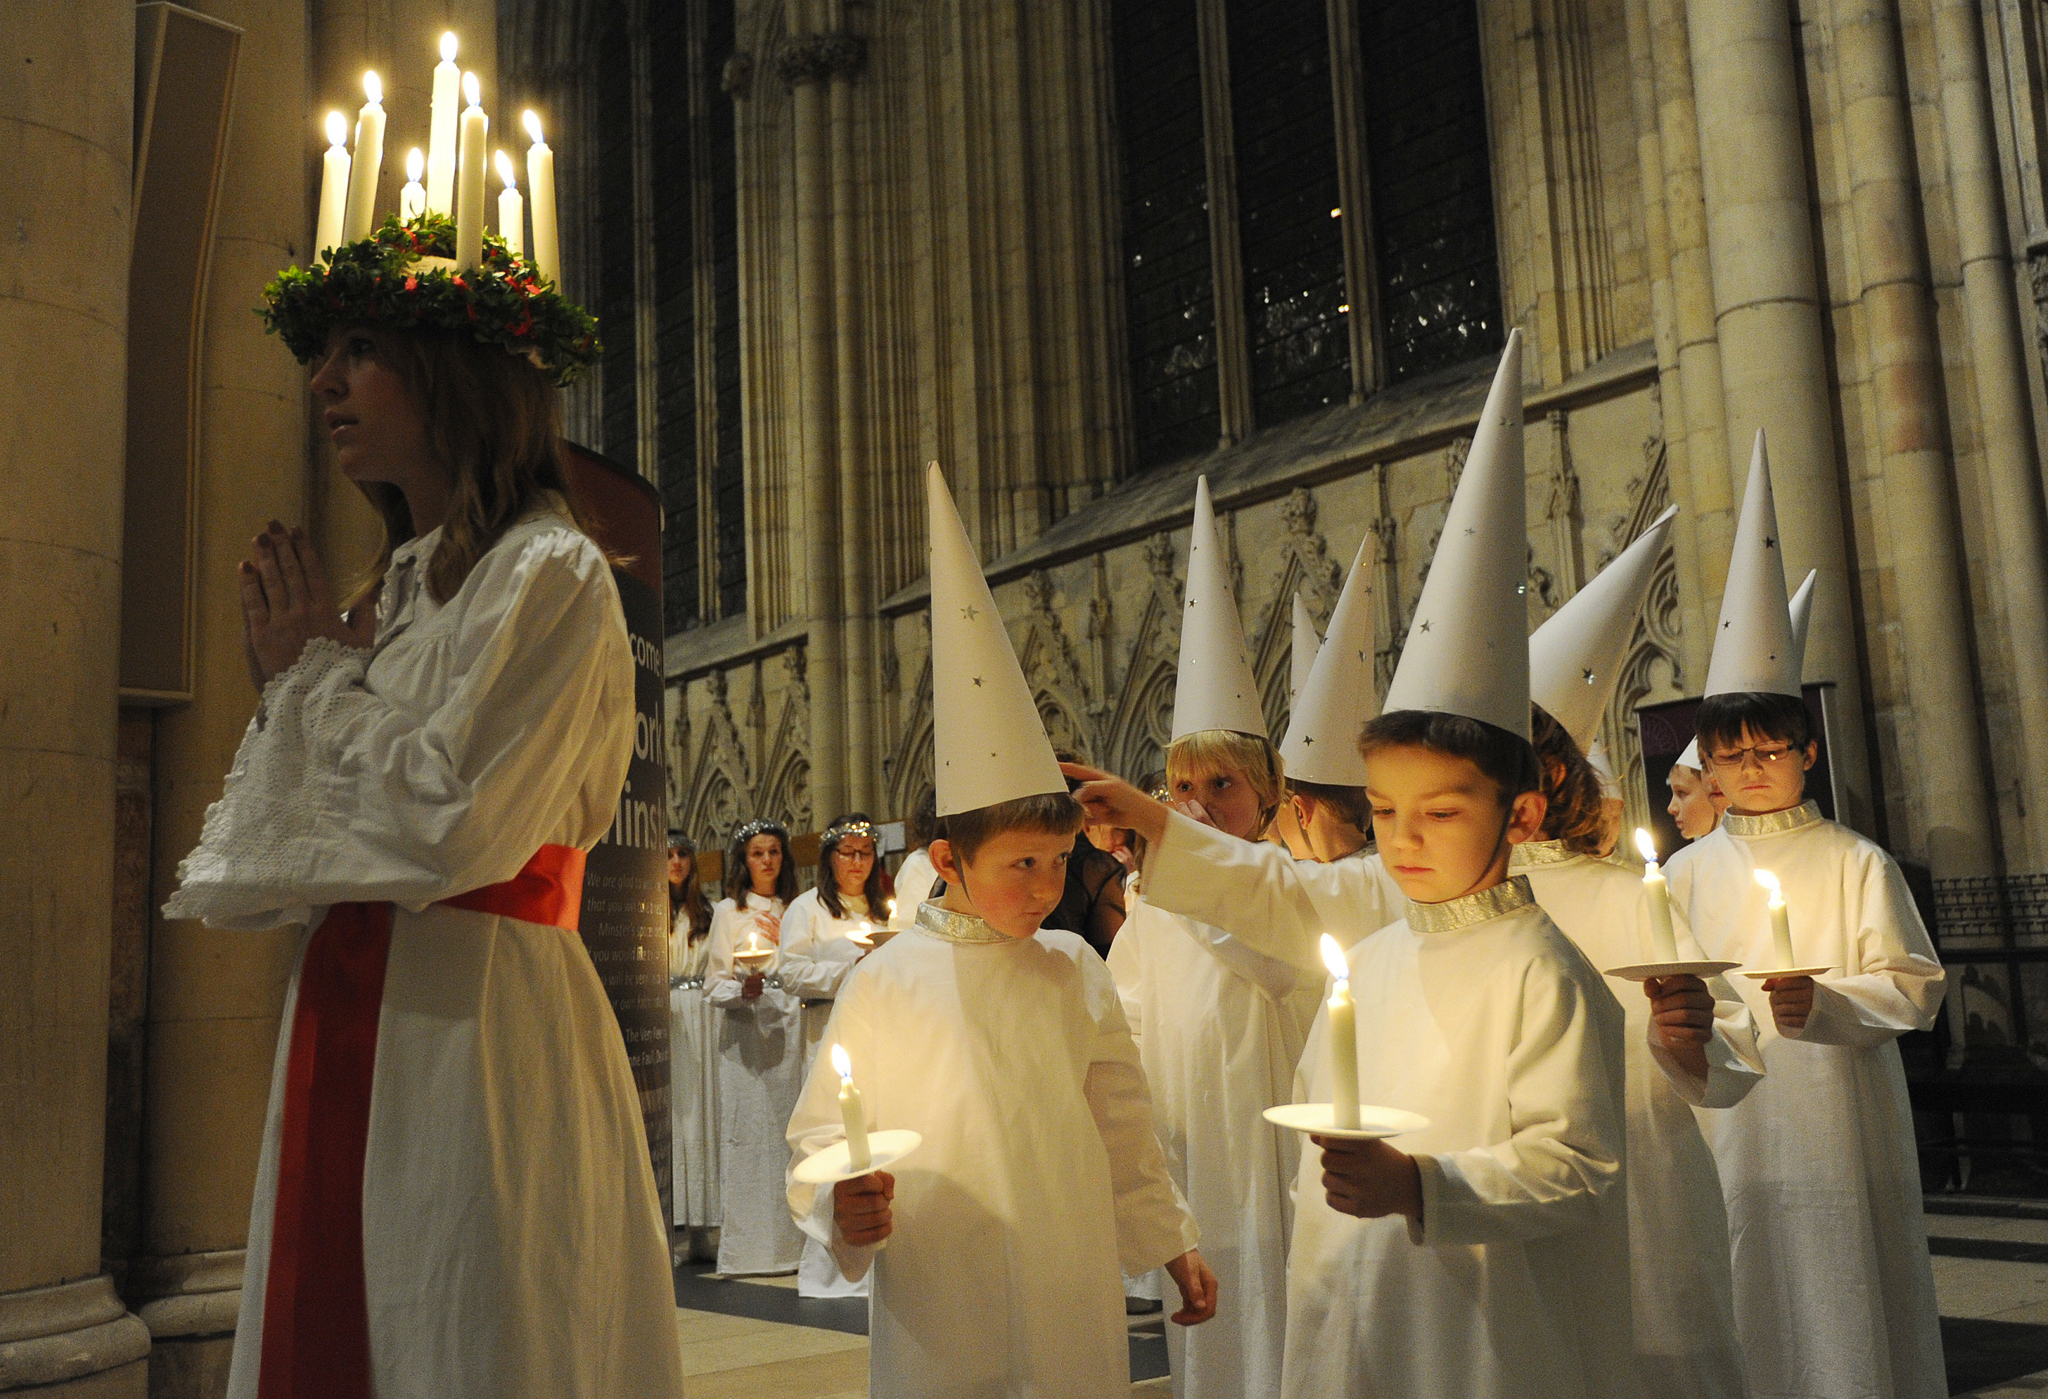 The Vaxholm Boys' Choir prepare to follow Sara Ringkrans at the start of the procession in the Nave of York Minster as part of the Sankta Lucia Festival.  The Sankta Lucia Festival of Light is an atmospheric, candlelit procession and carol service based on the Swedish Lucia celebration, a powerful symbol and celebration of light. This year it is the first time the service has been held at York Minster in partnership with York Anglo Scandinavian Society.